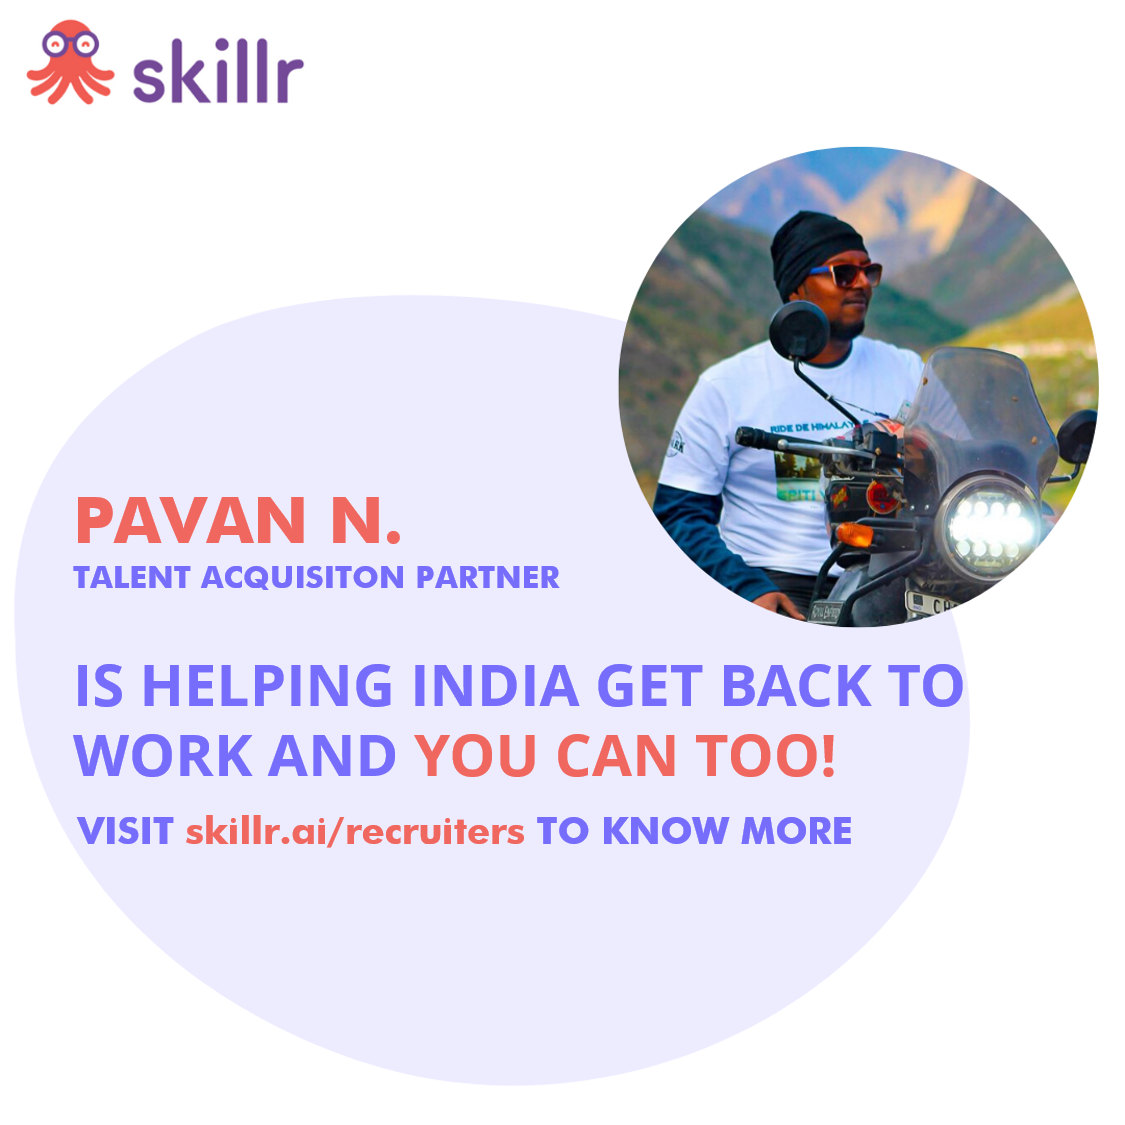 We welcome Pavan N. as a Talent Acquisition Partner! Do you want to be a part of the team as well? Join this movement at https://t.co/VXaP3kxczc. . . . #BharatBackToBusiness #unlock1 #UnlockIndia #covid #hiring #tracker #information #accessible #democratic #pandemic #covidindia https://t.co/F1xFmJcaOI